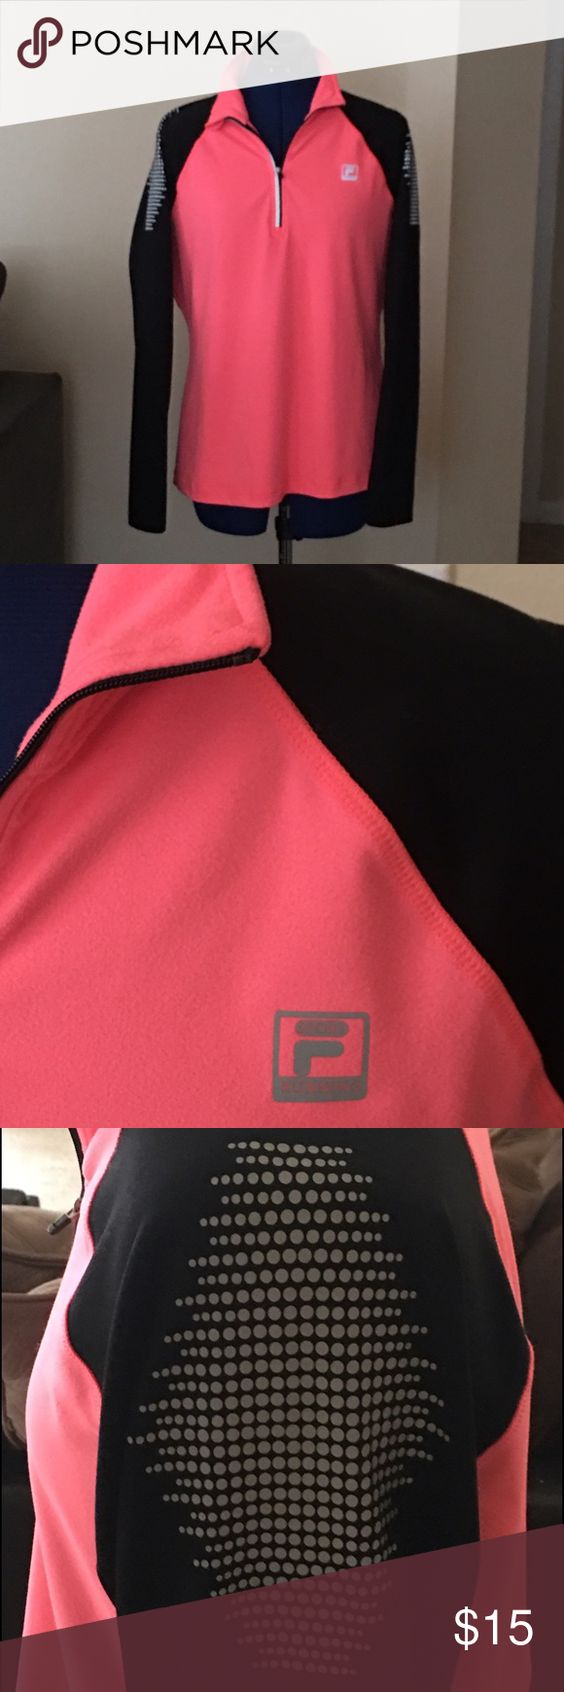 Sport top Soft and comfy Fila zip-up sport top! I love this great CORAL color and design! Just doesn't fit anymore! Fila Tops